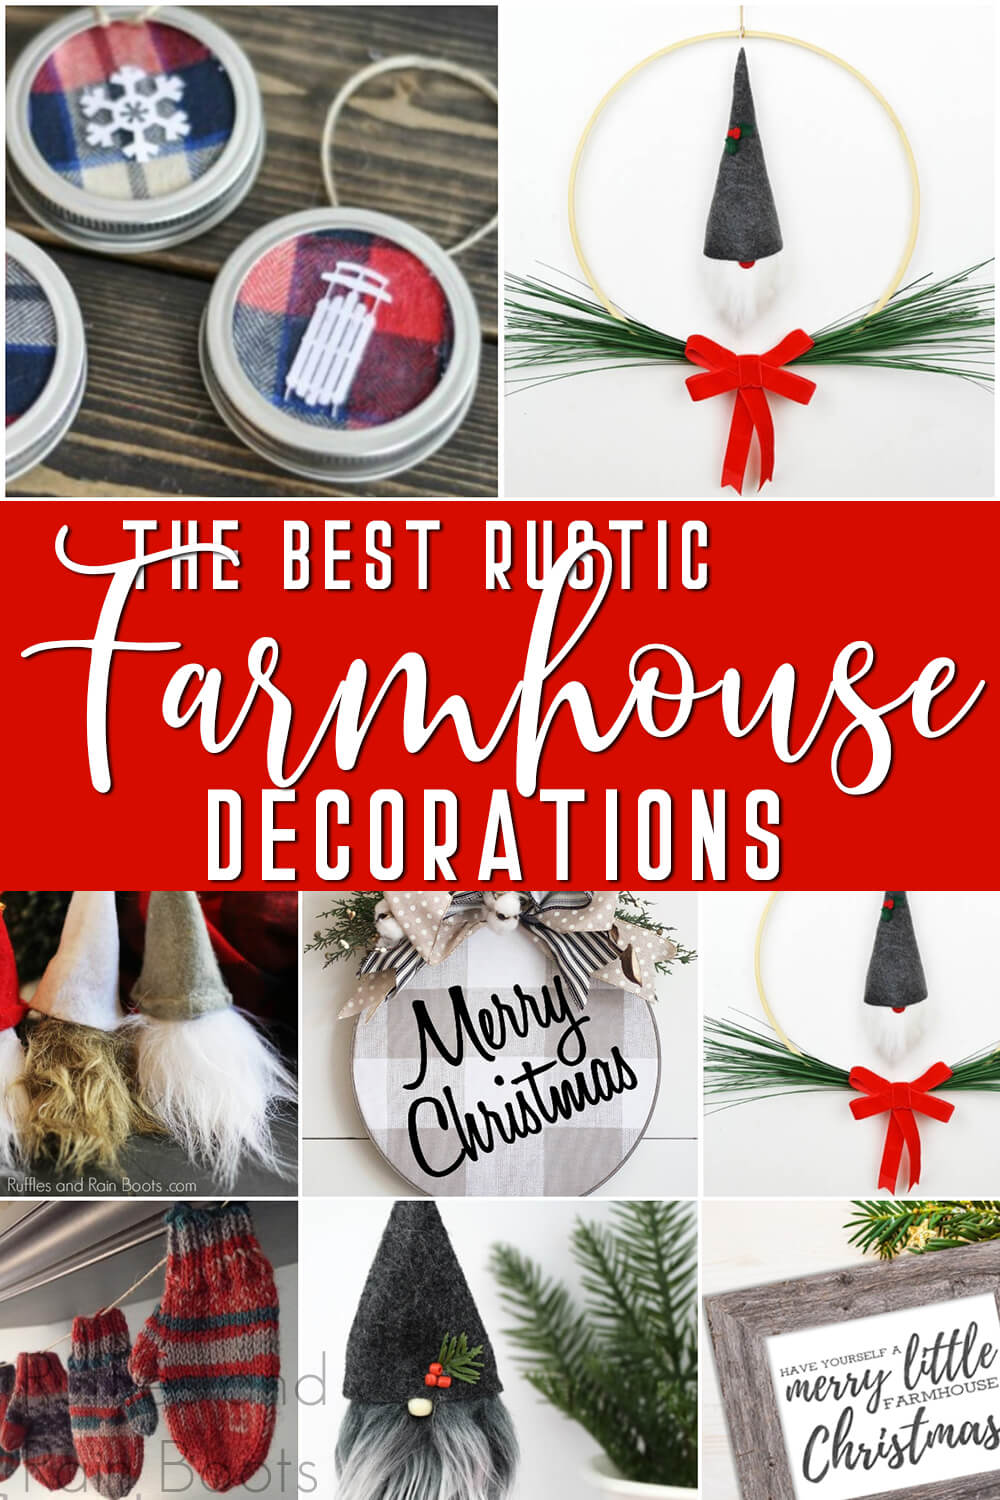 photo collage of easy rustic farmhouse decorations with text which reads the best rustic farmhouse decorations